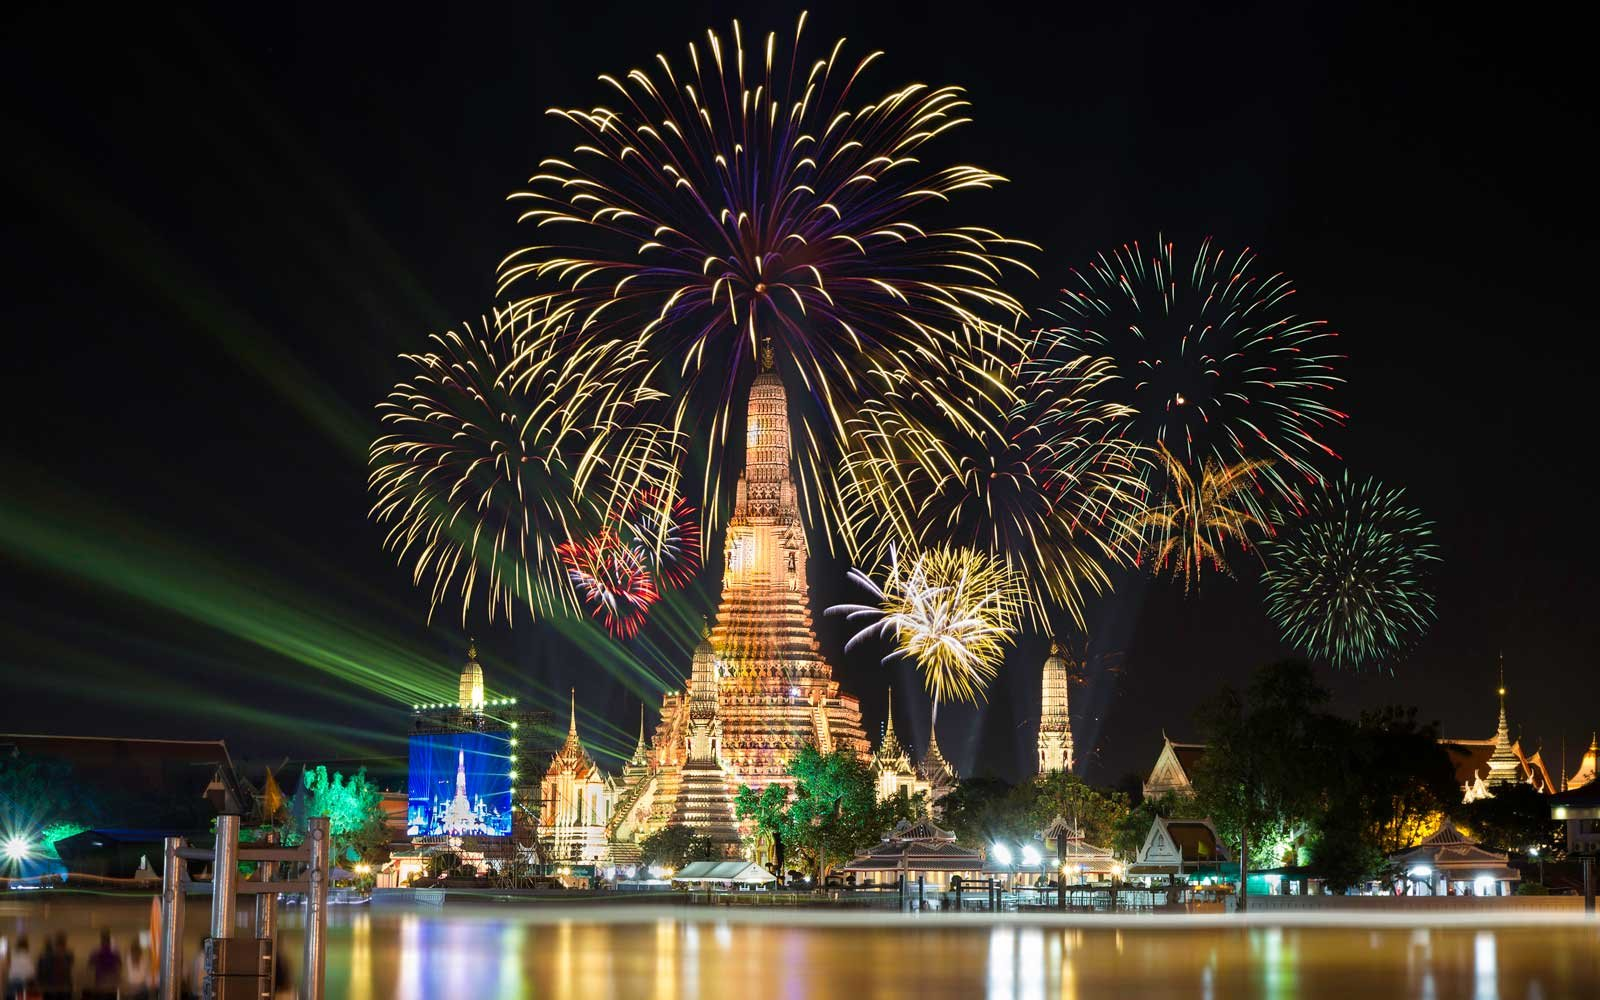 New Year's Eve fireworks at Wat Arun temple in Bangkok, Thailand